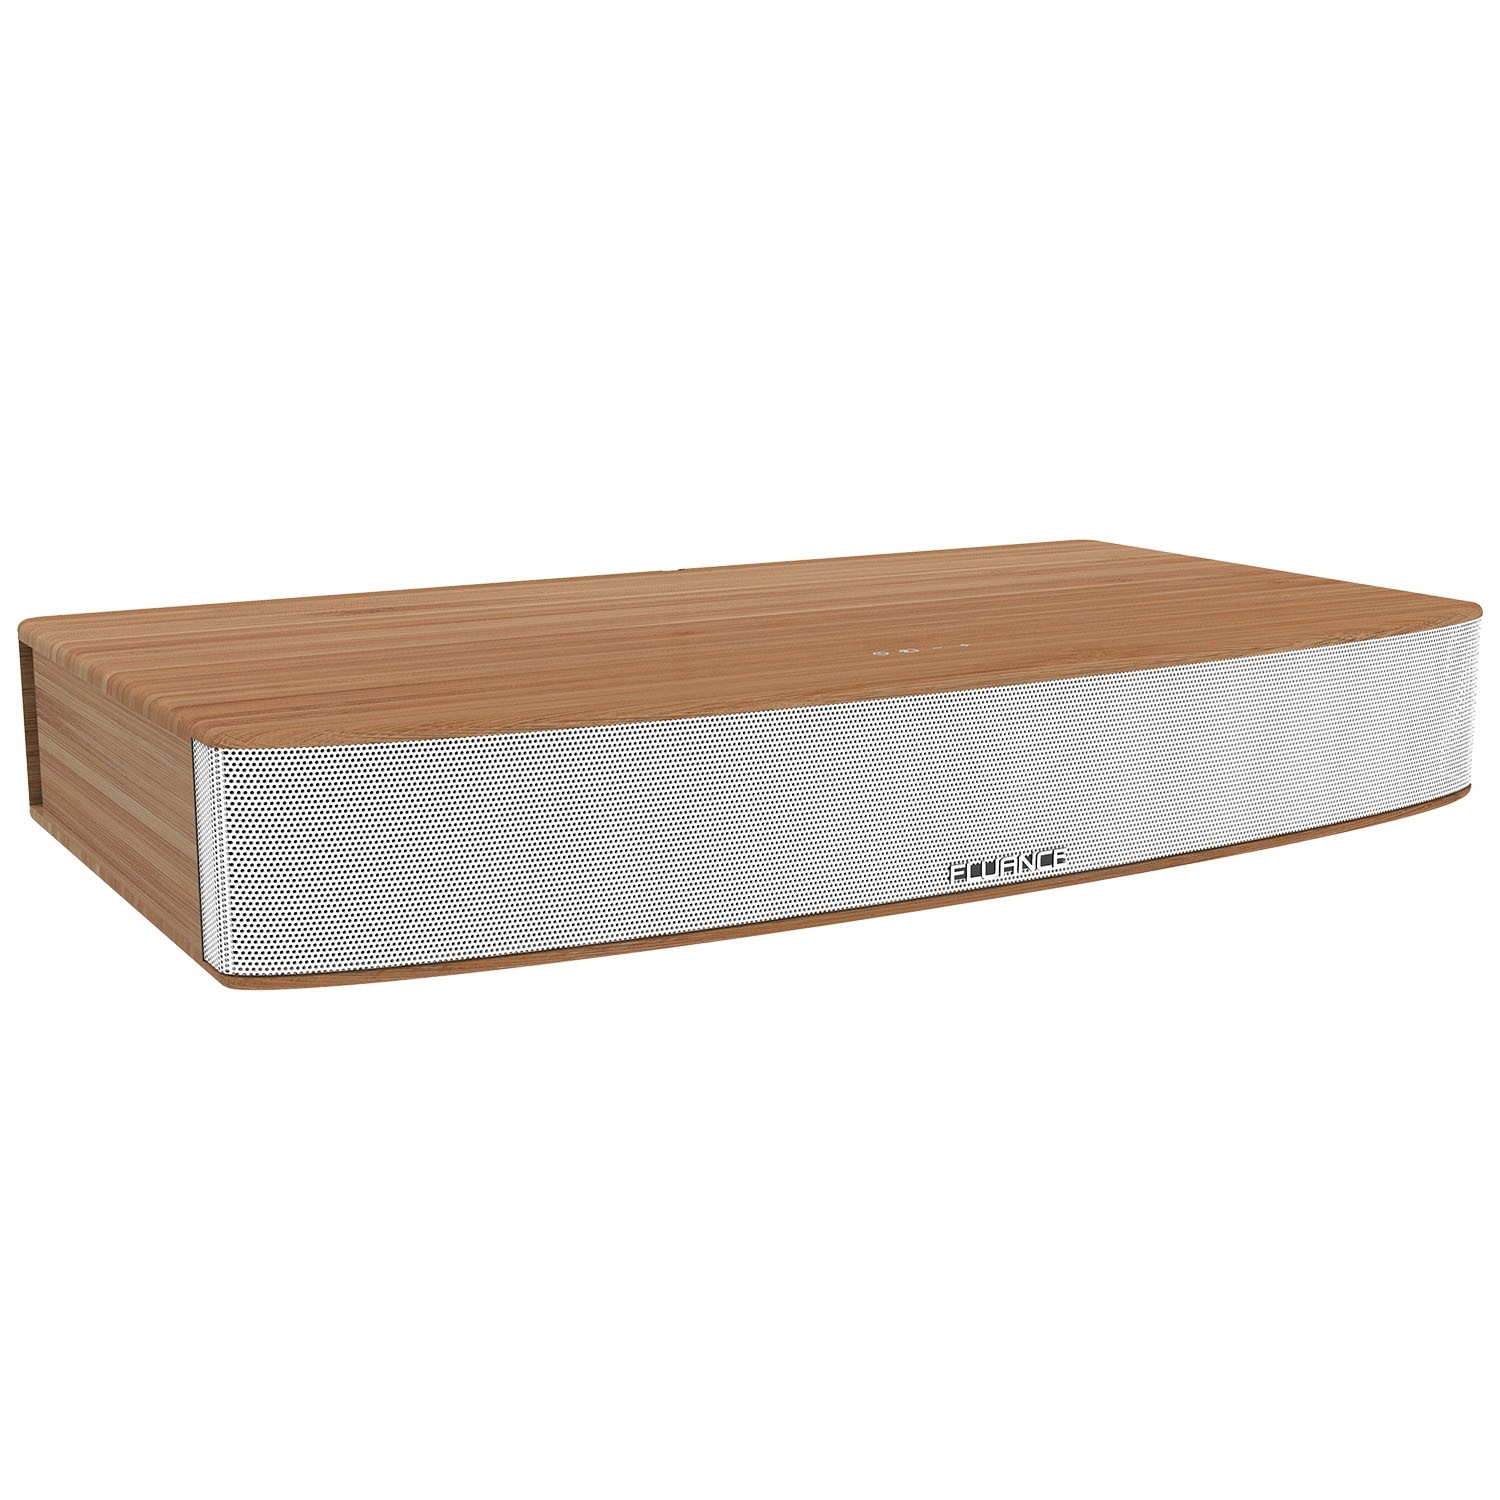 AB40W High Performance Soundbase - Main Image